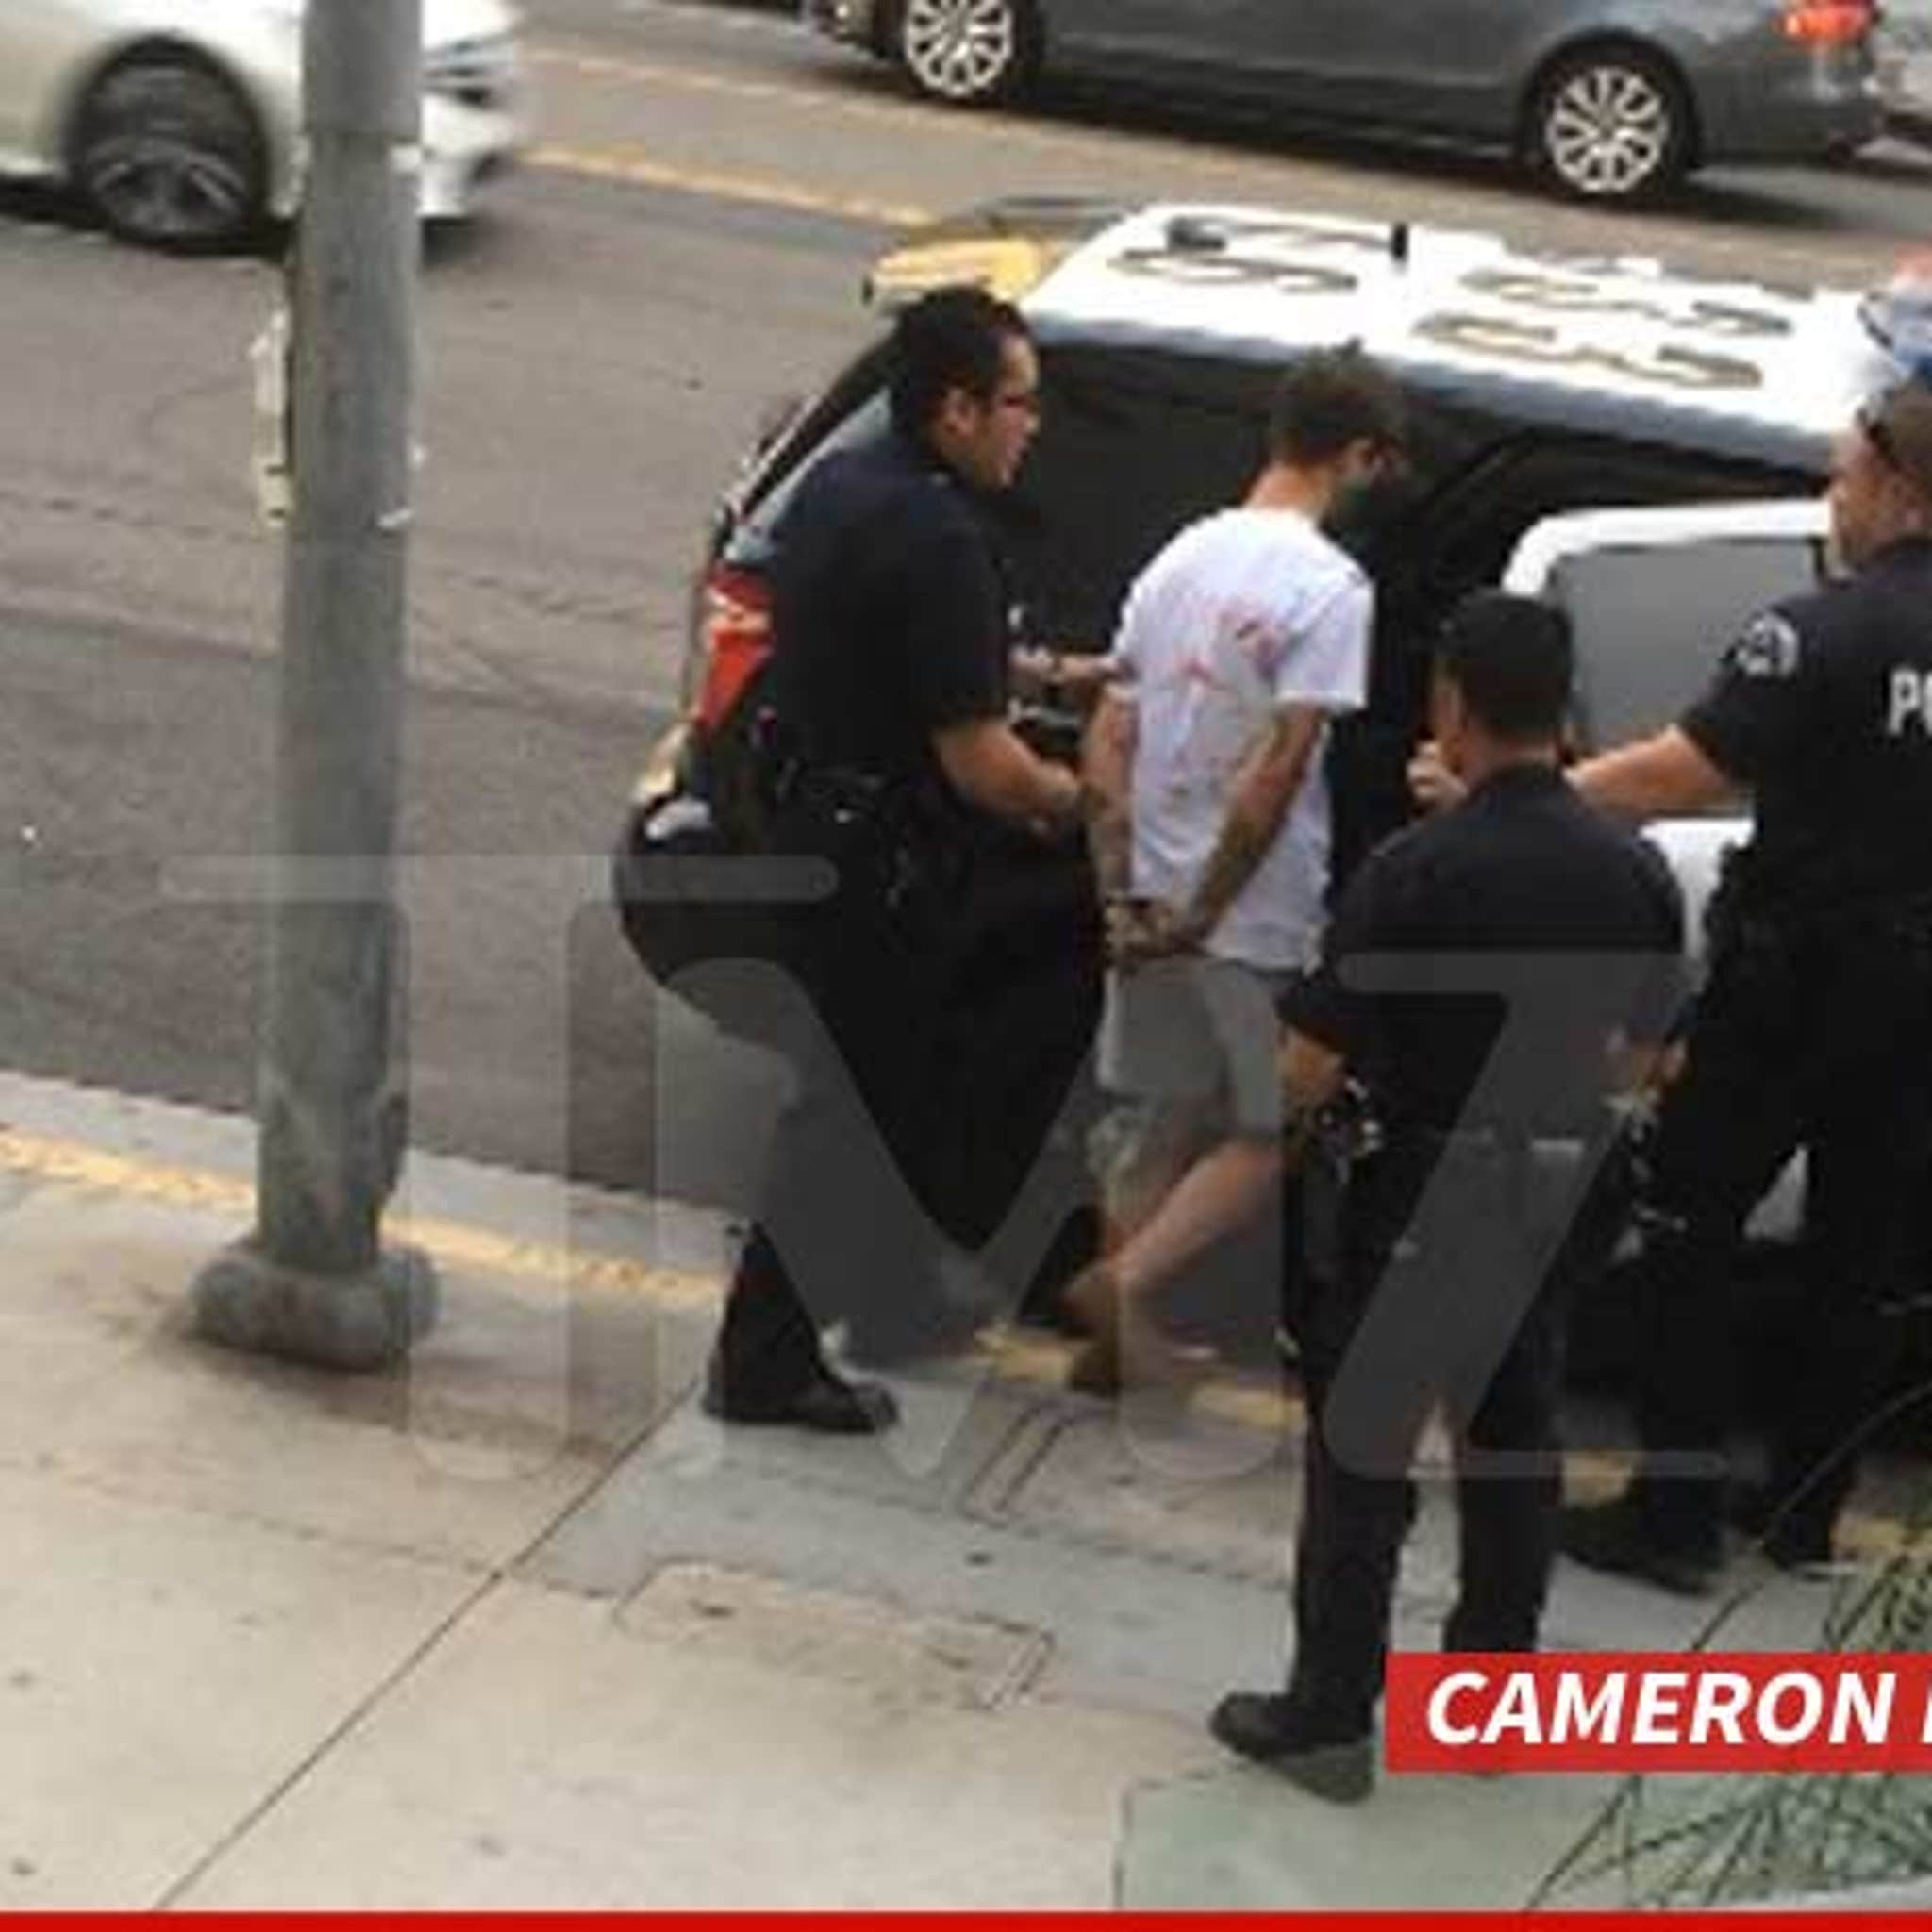 Vine' Star Cameron Dallas -- Arrested After Telling Landlord, 'Screw